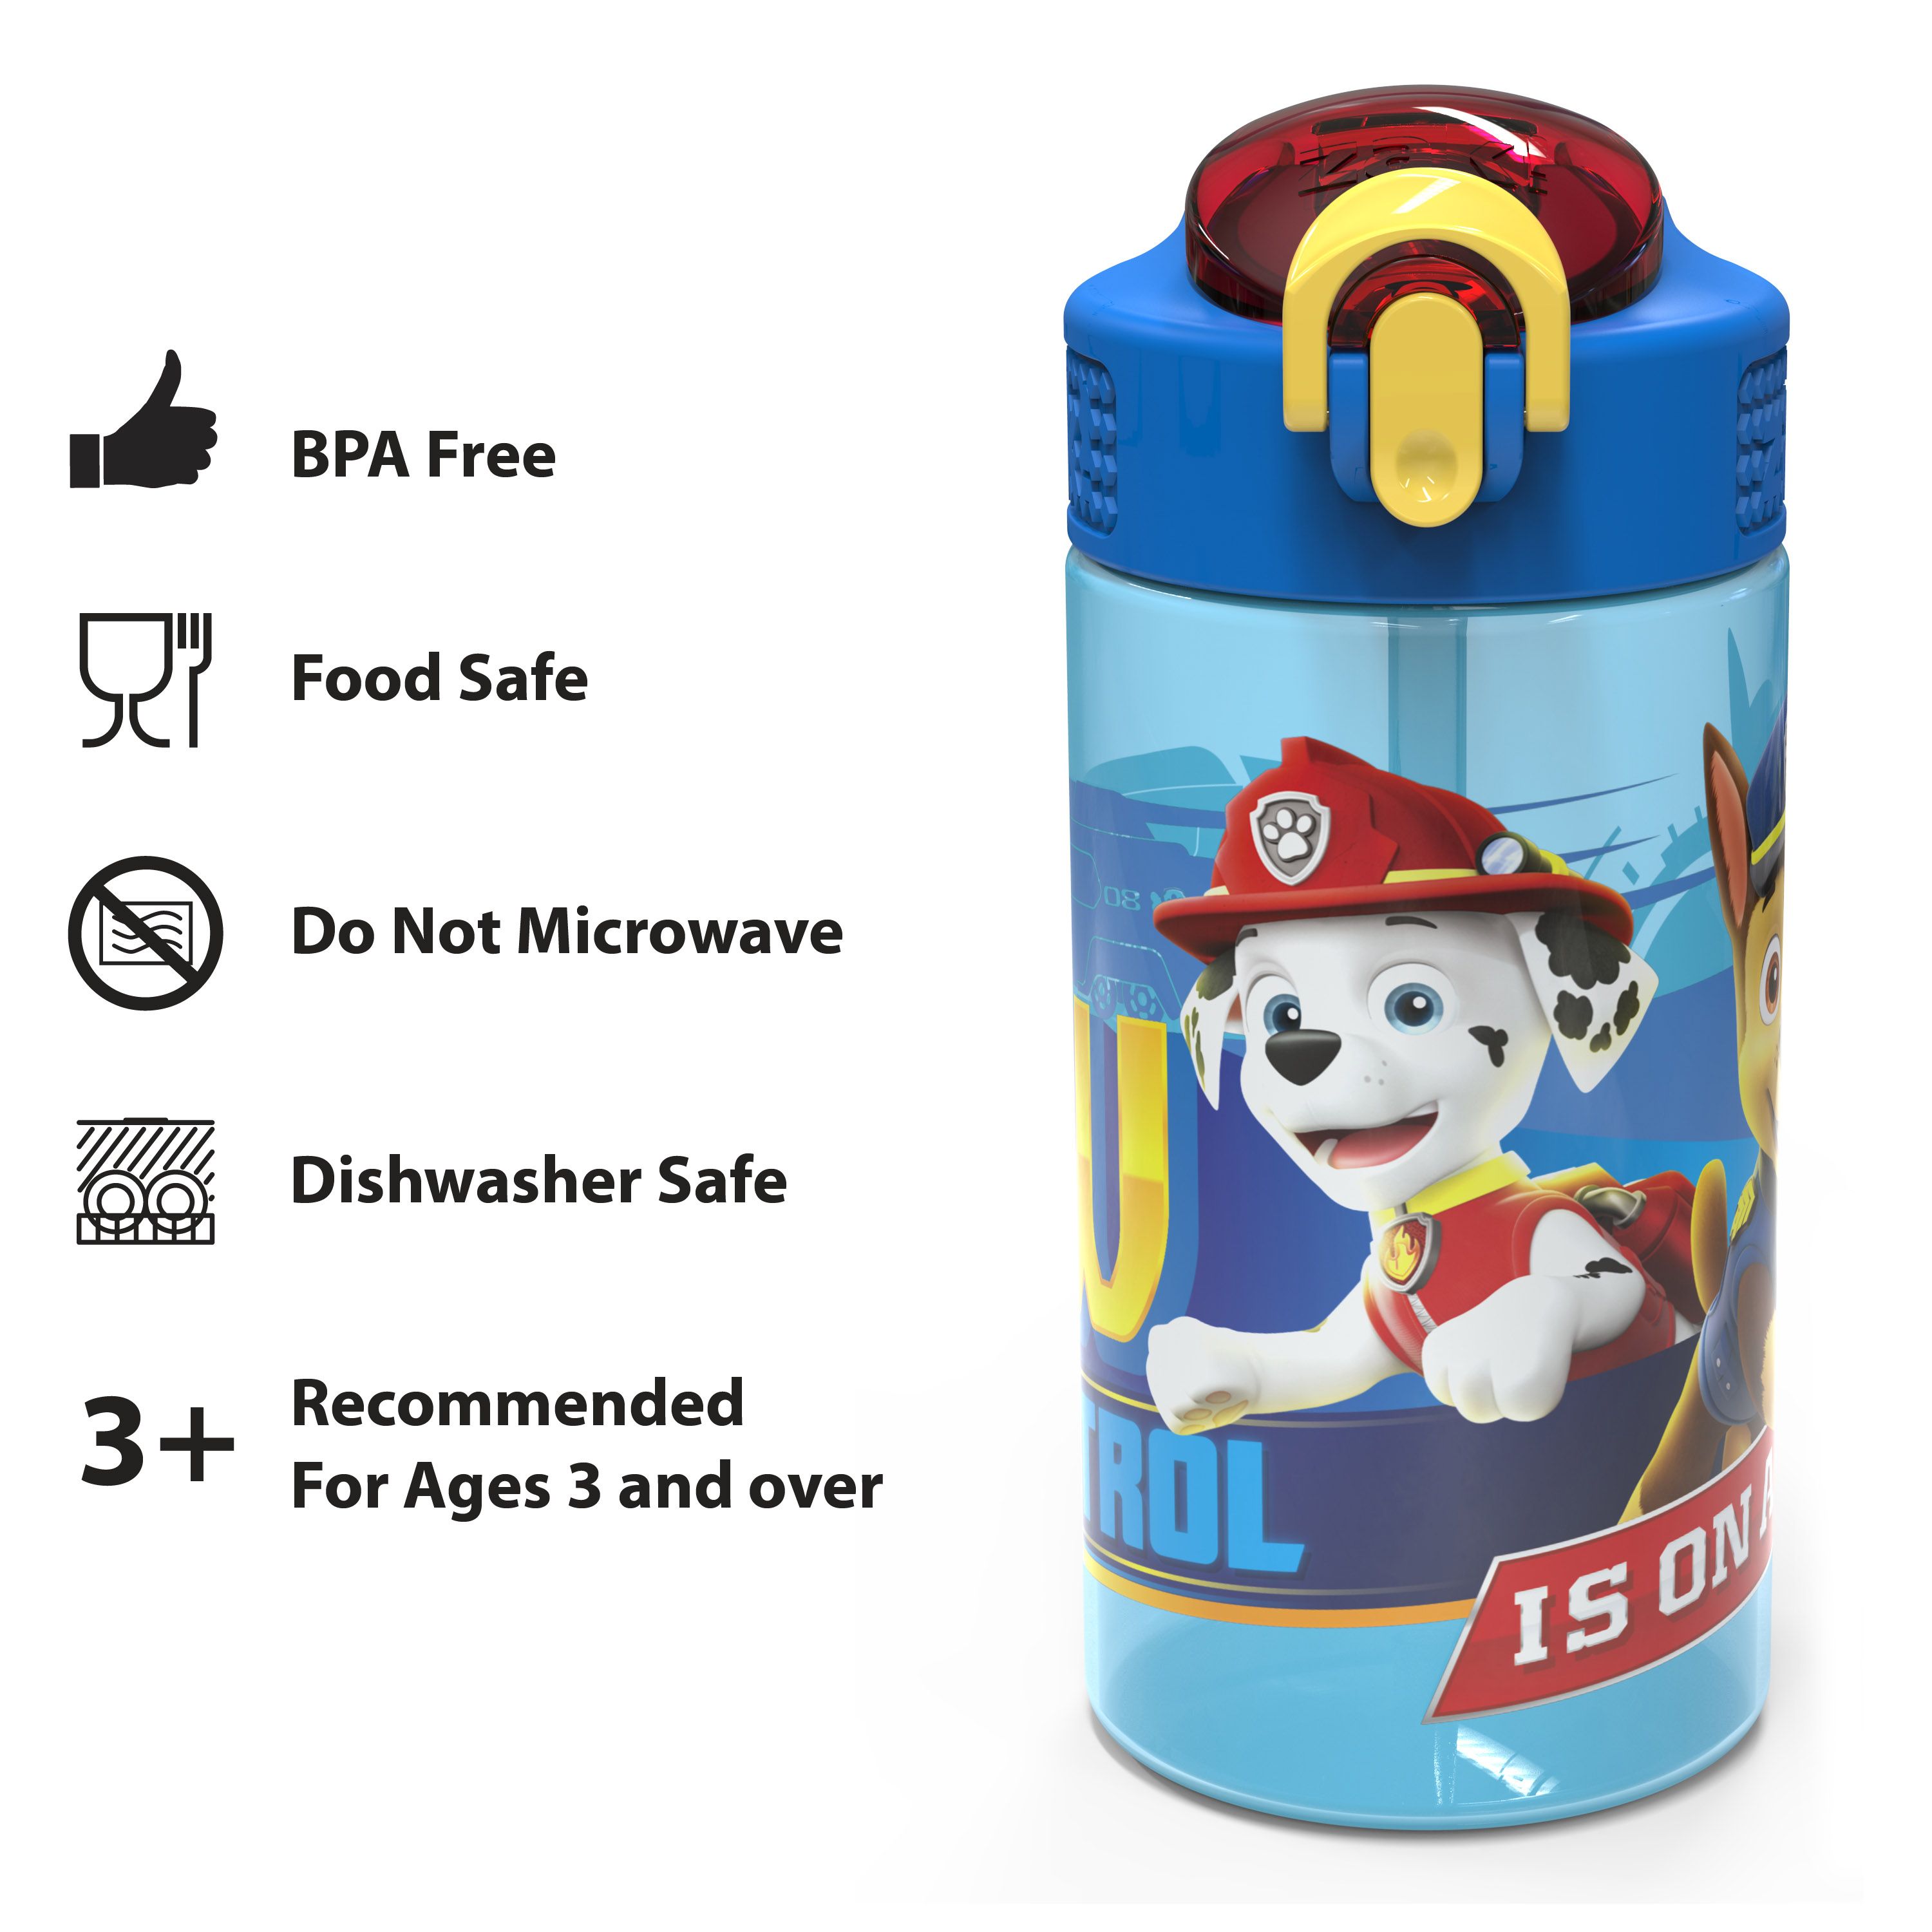 Paw Patrol 16 ounce Reusable Plastic Water Bottle with Straw, Marshall, 2-piece set slideshow image 7